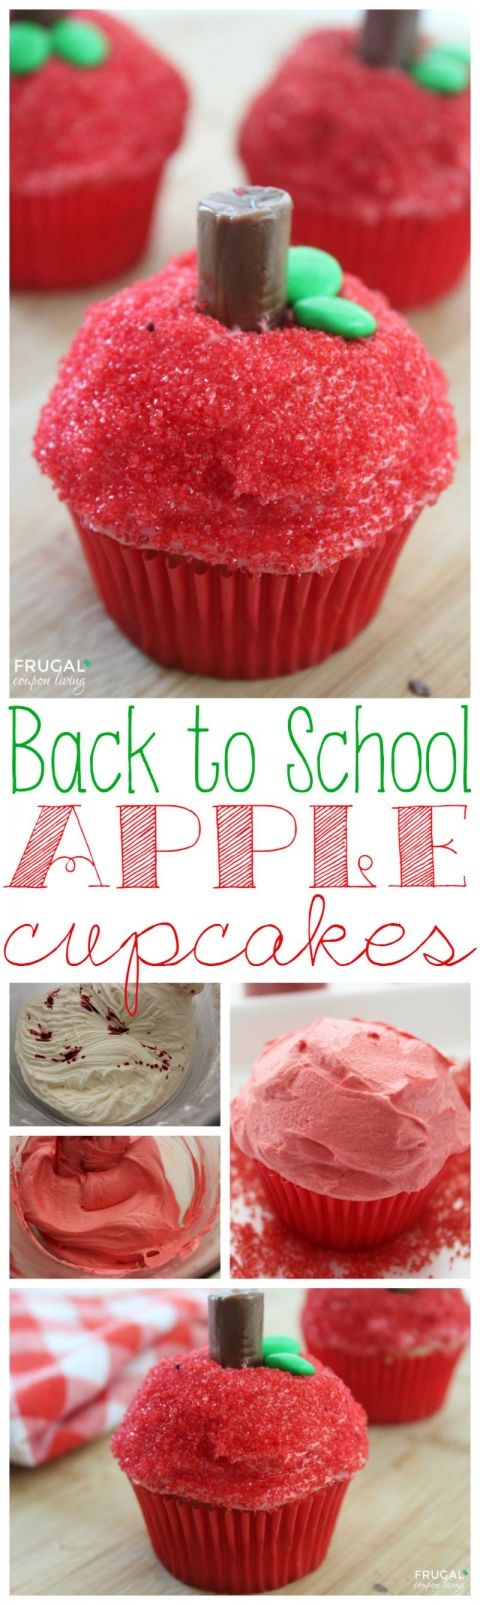 back-to-school-apple-cupcakes-Collage-frugal-coupon-living